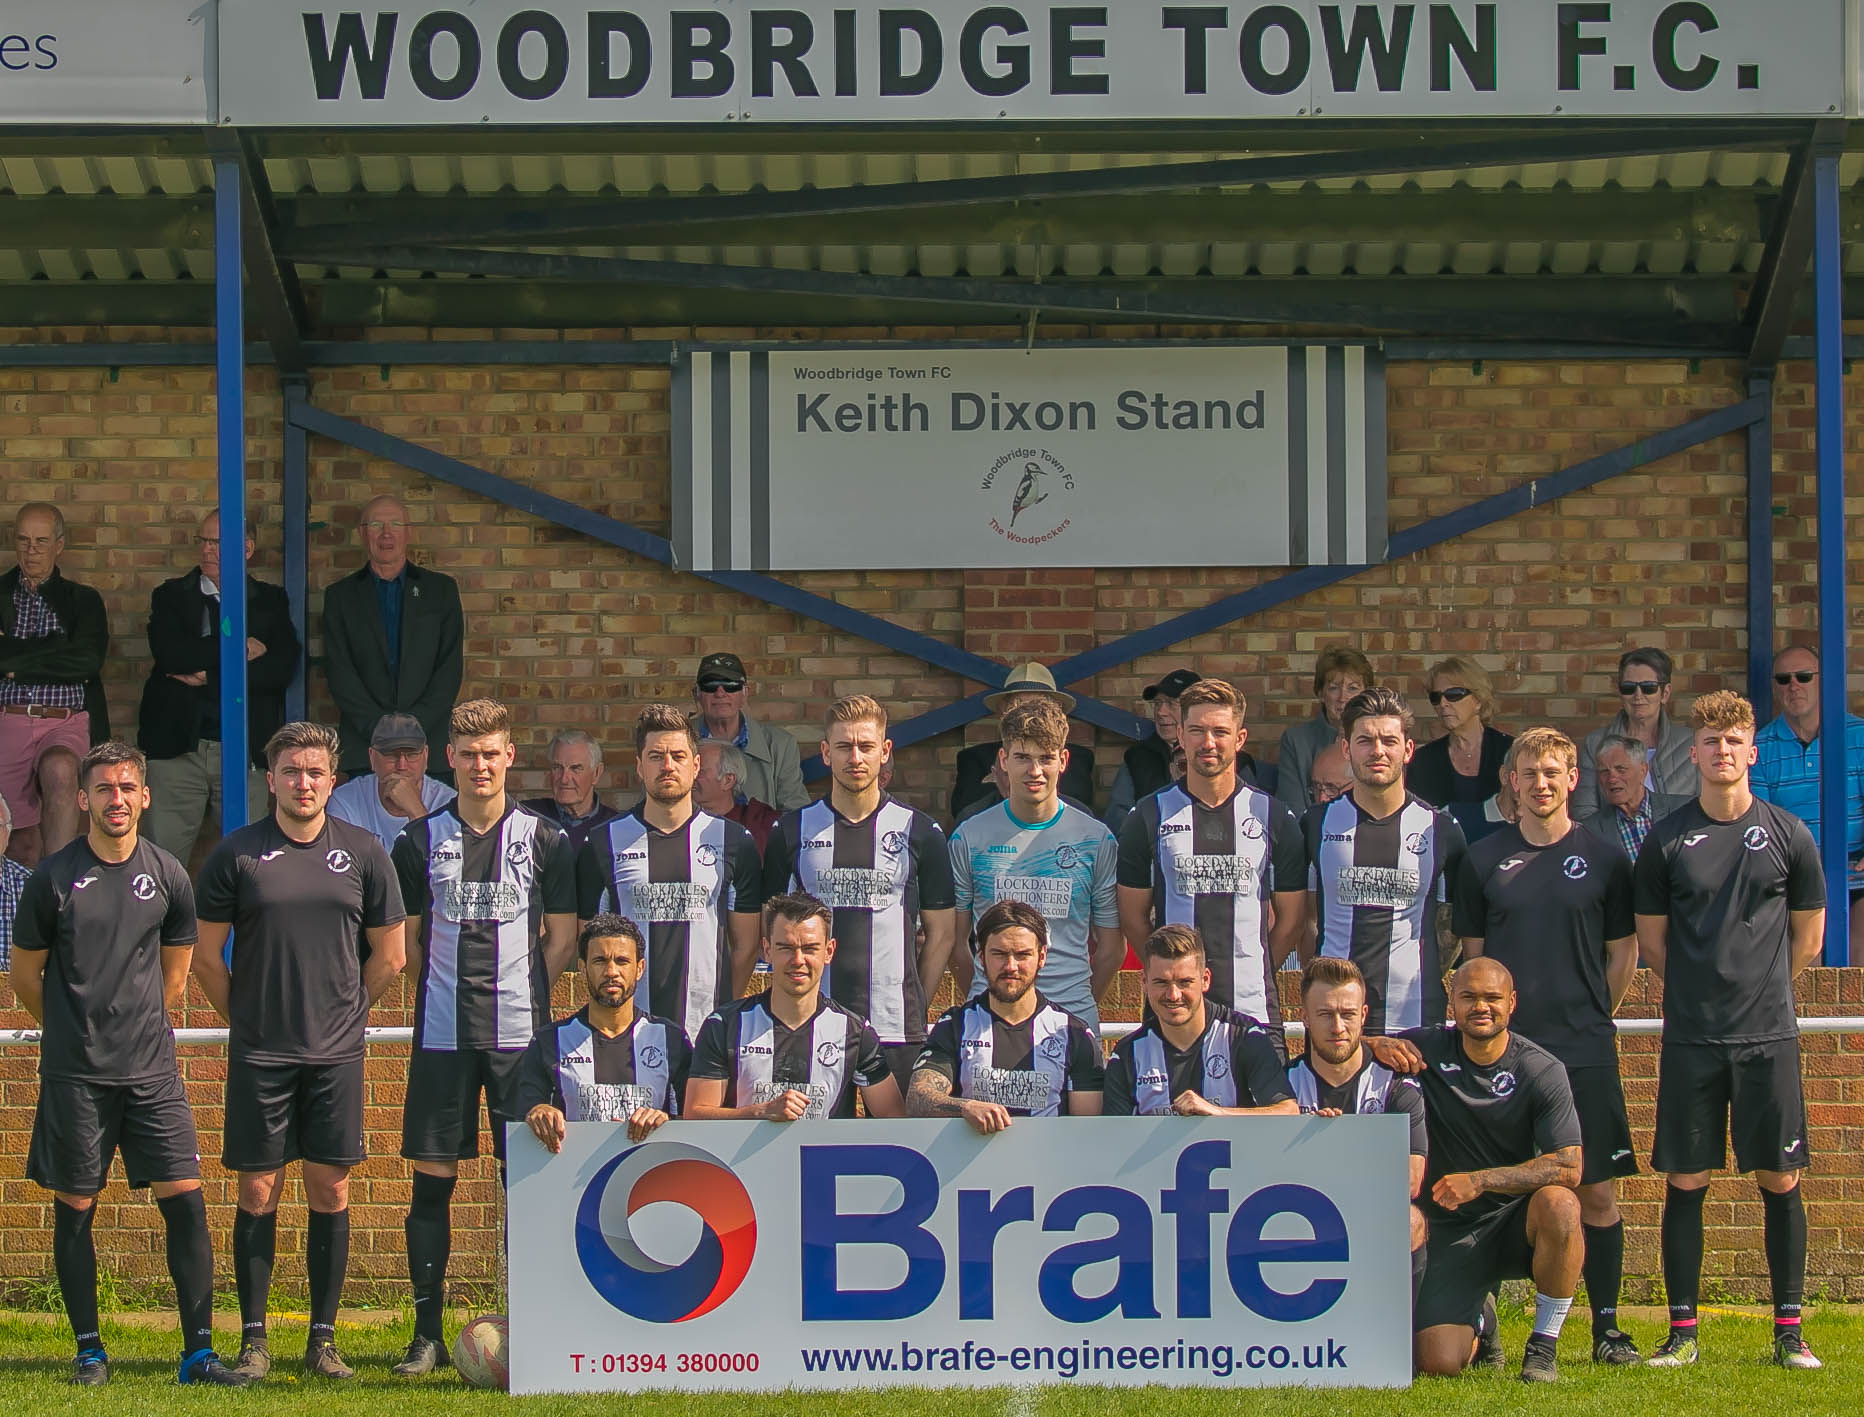 Brafe is proud to continue to sponsor WTFC